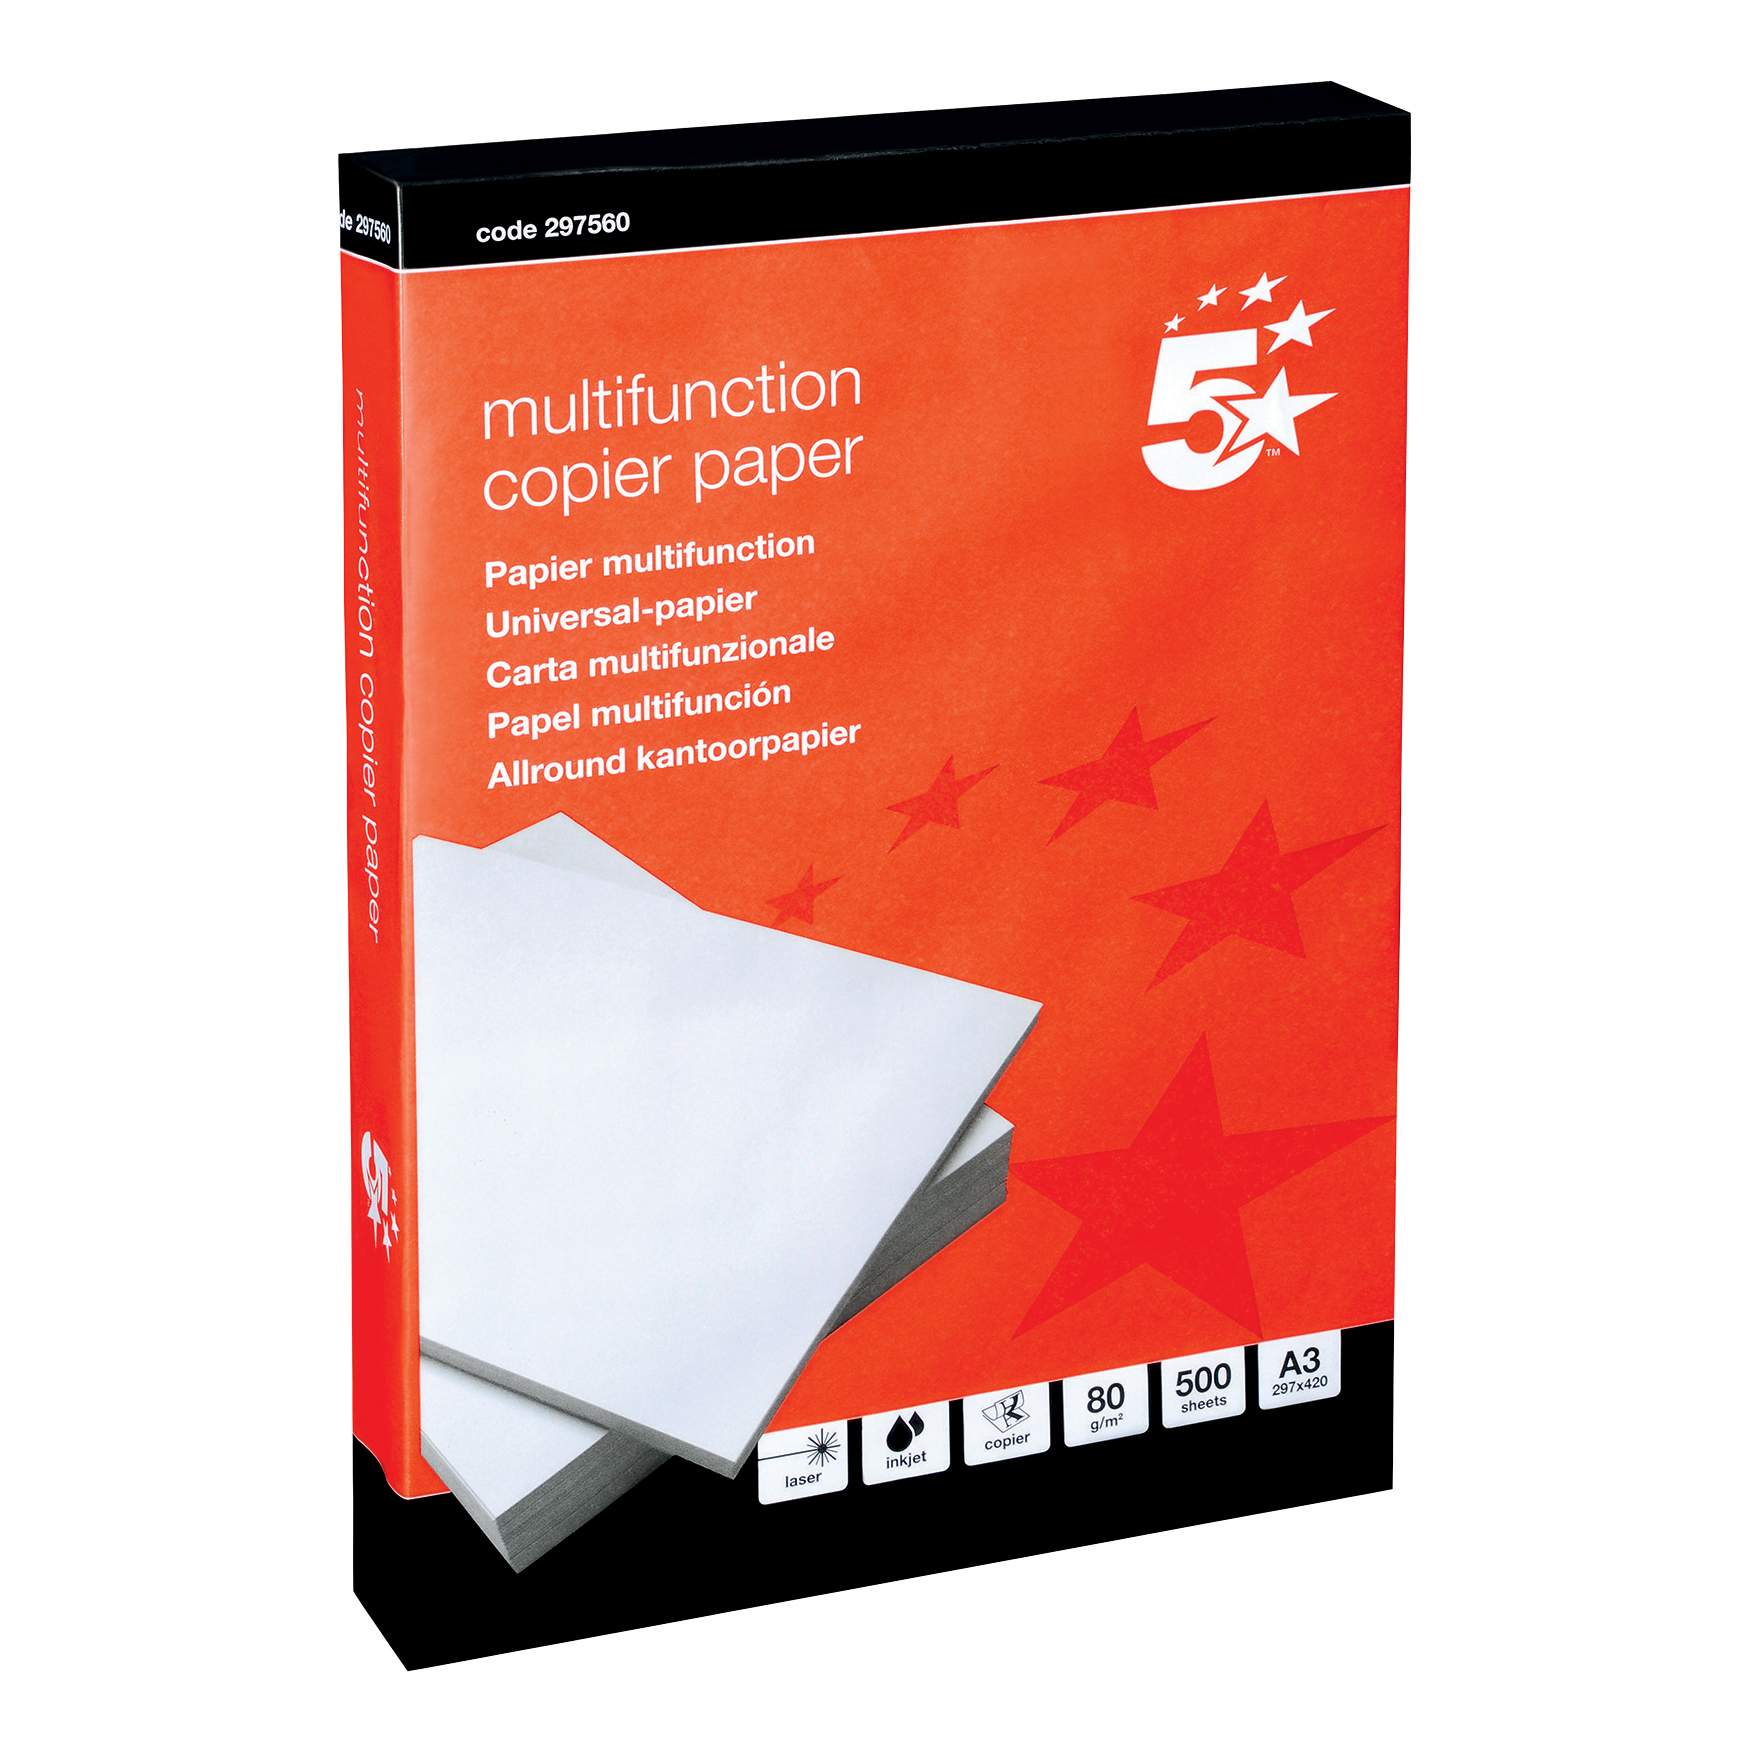 A3 5 Star Office Copier Paper Multifunctional Ream-Wrapped 80gsm A3 White 500 Sheets